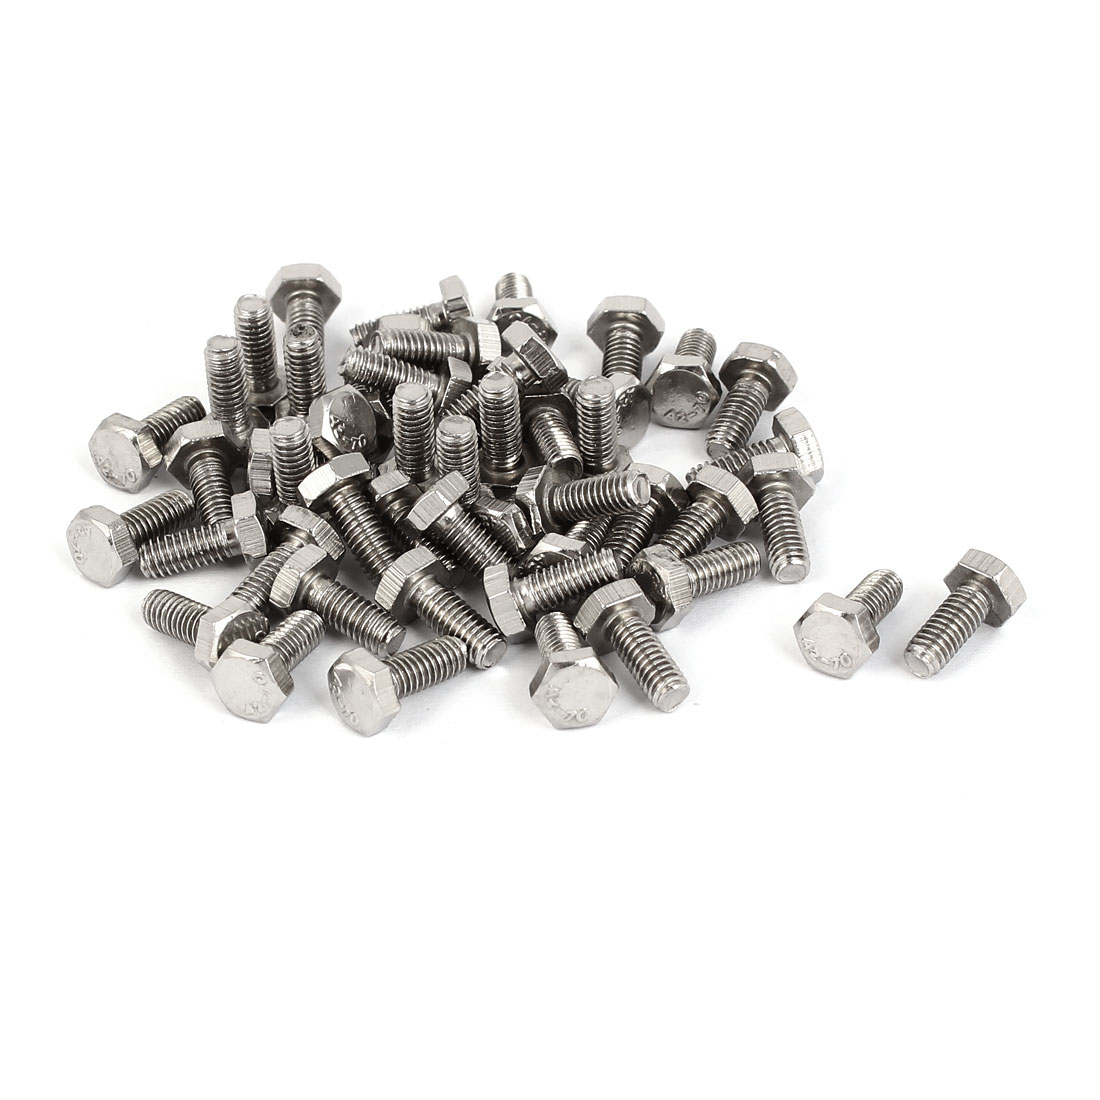 M4 x 10mm 0.7mm Pitch Stainless Steel Fully Thread Hex Screws DIN 933 50PCS